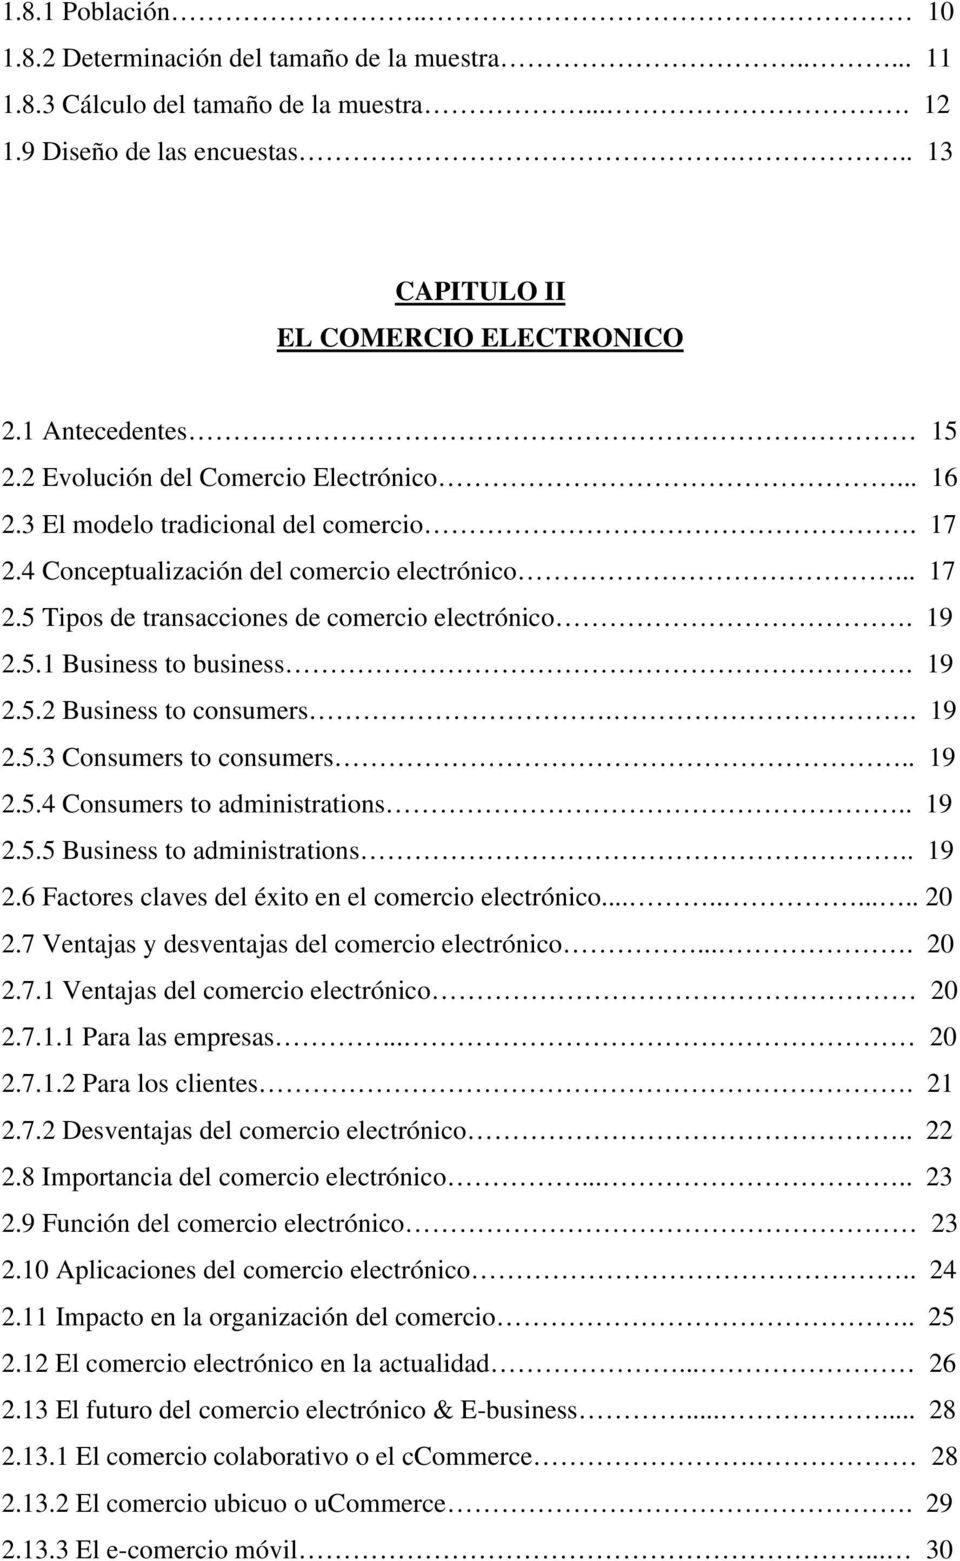 19 2.5.1 Business to business. 19 2.5.2 Business to consumers.. 19 2.5.3 Consumers to consumers.. 19 2.5.4 Consumers to administrations.. 19 2.5.5 Business to administrations.. 19 2.6 Factores claves del éxito en el comercio electrónico.